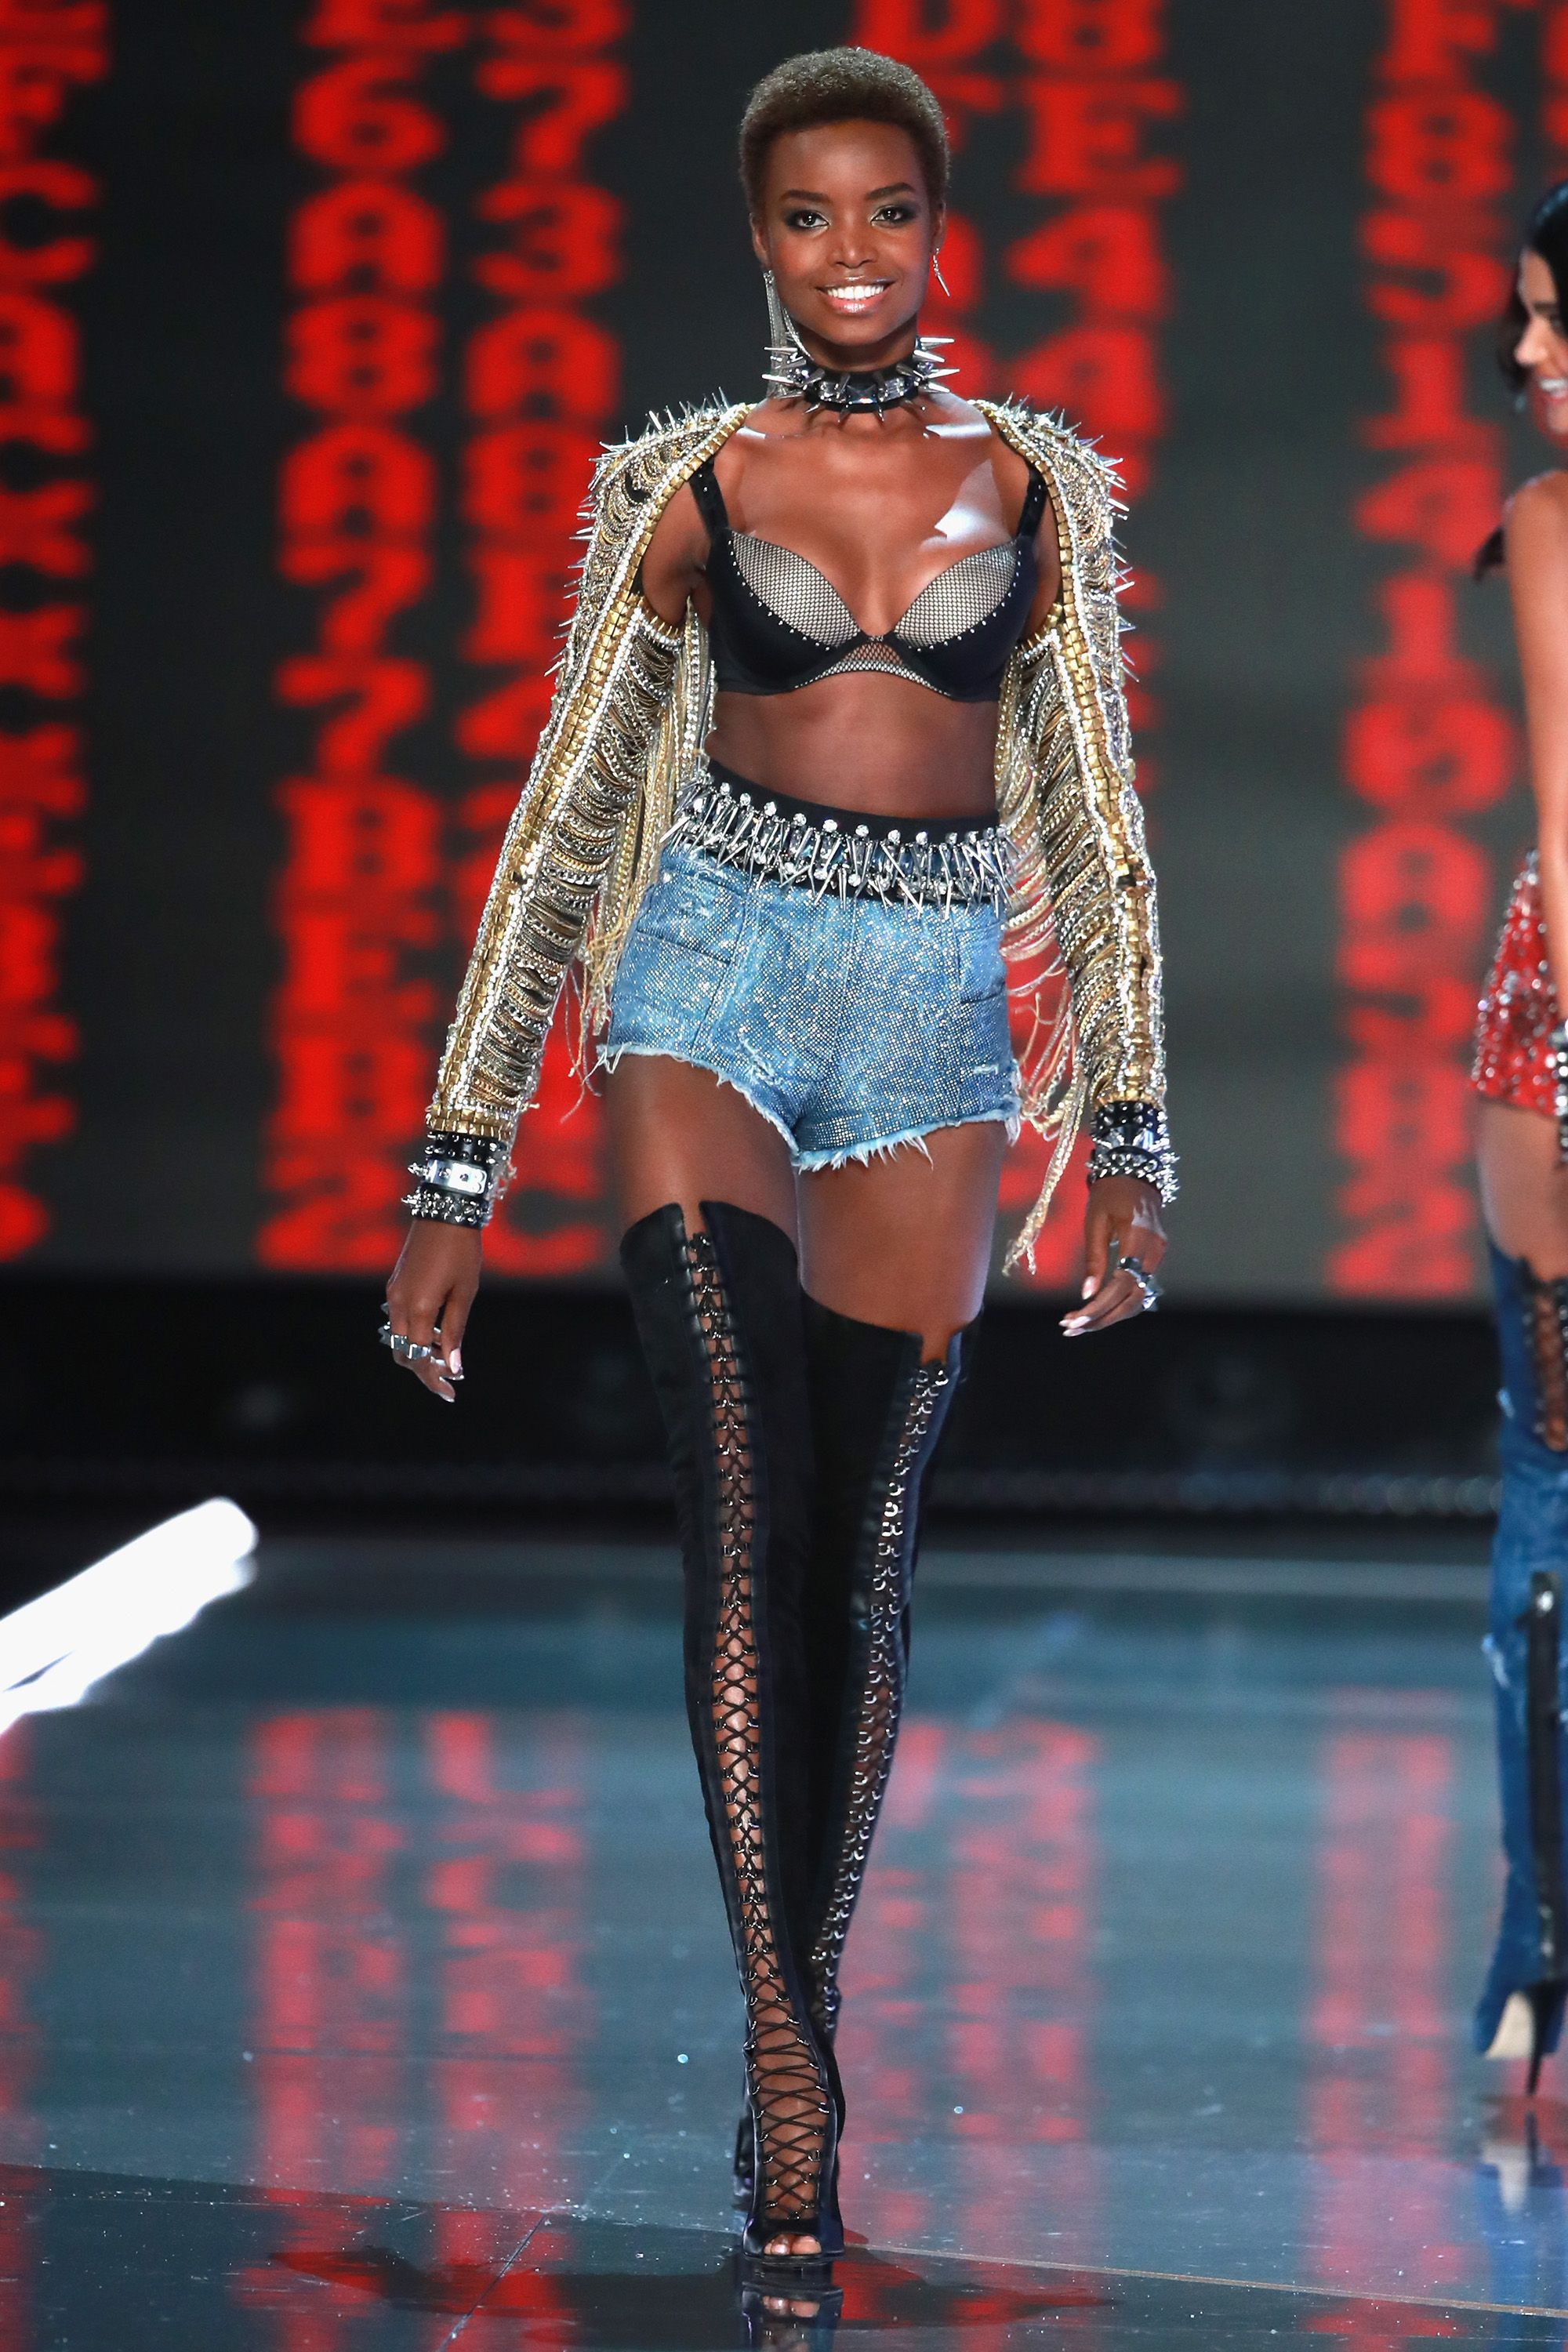 c53c5ccc See the Full Victoria's Secret x Balmain Collection - Every Look of the  Victoria's Secret x Balmain Collaboration